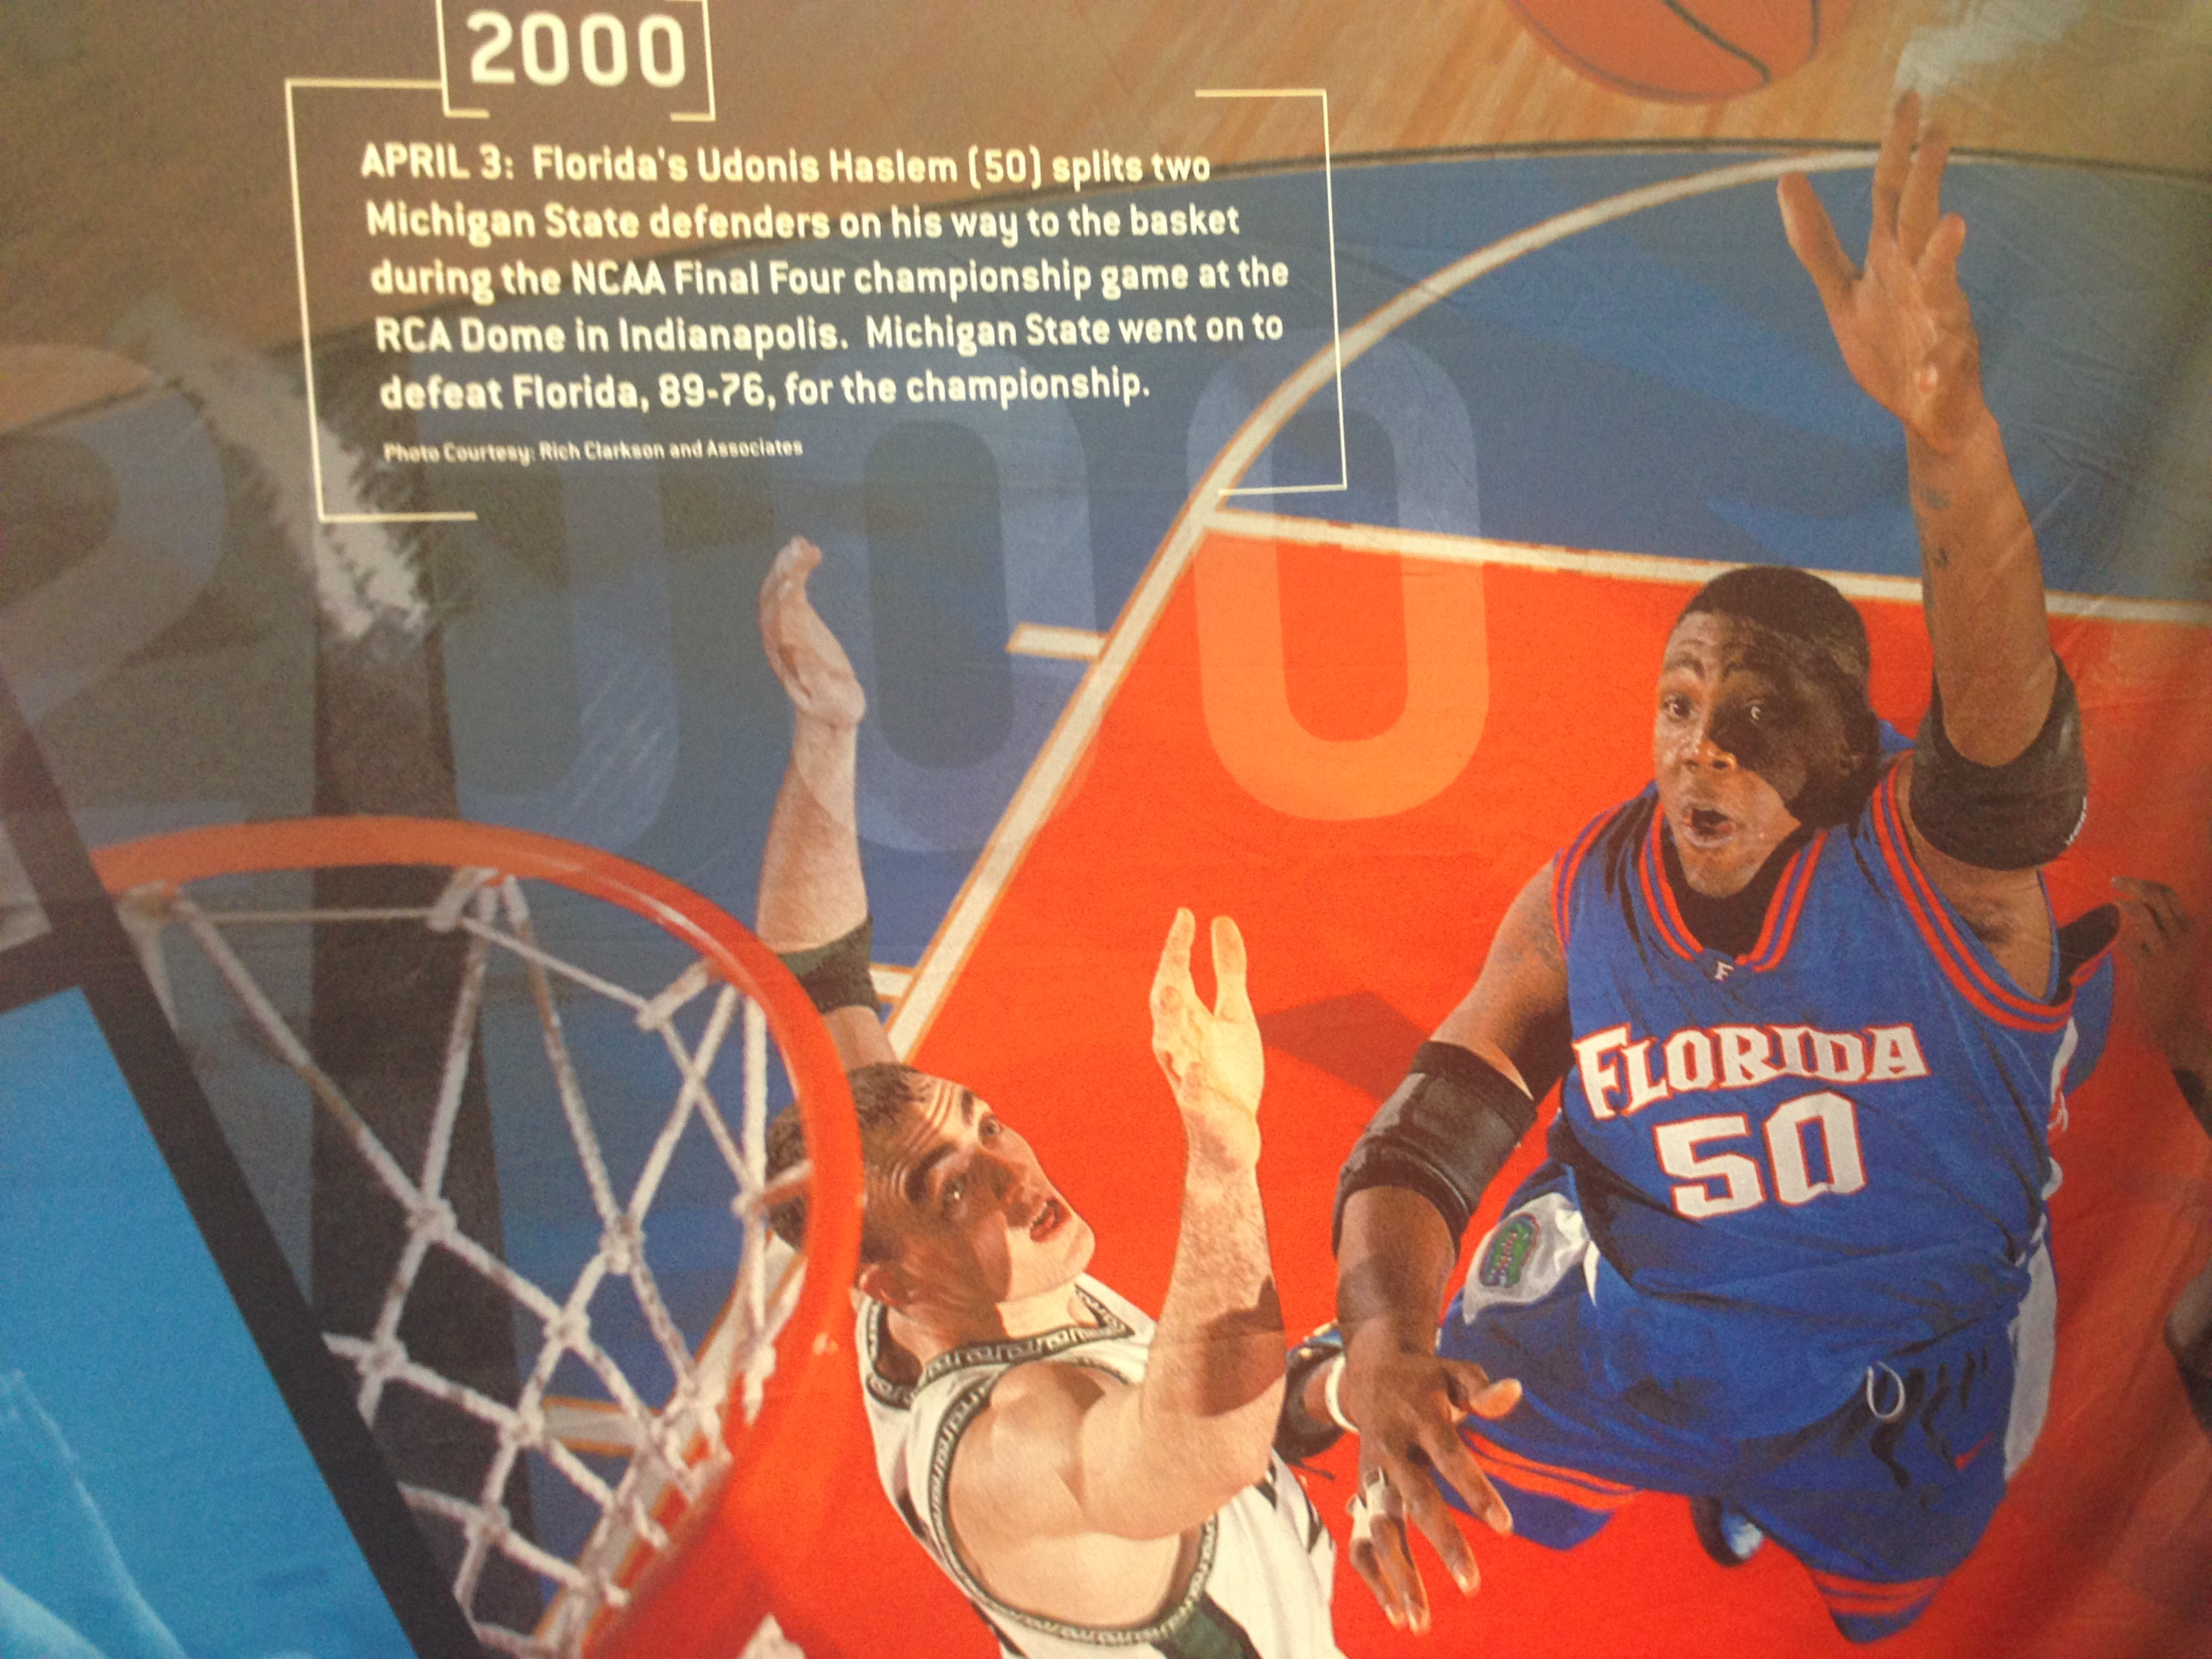 Udonis Haslem in the history across the walls at Bracket Town